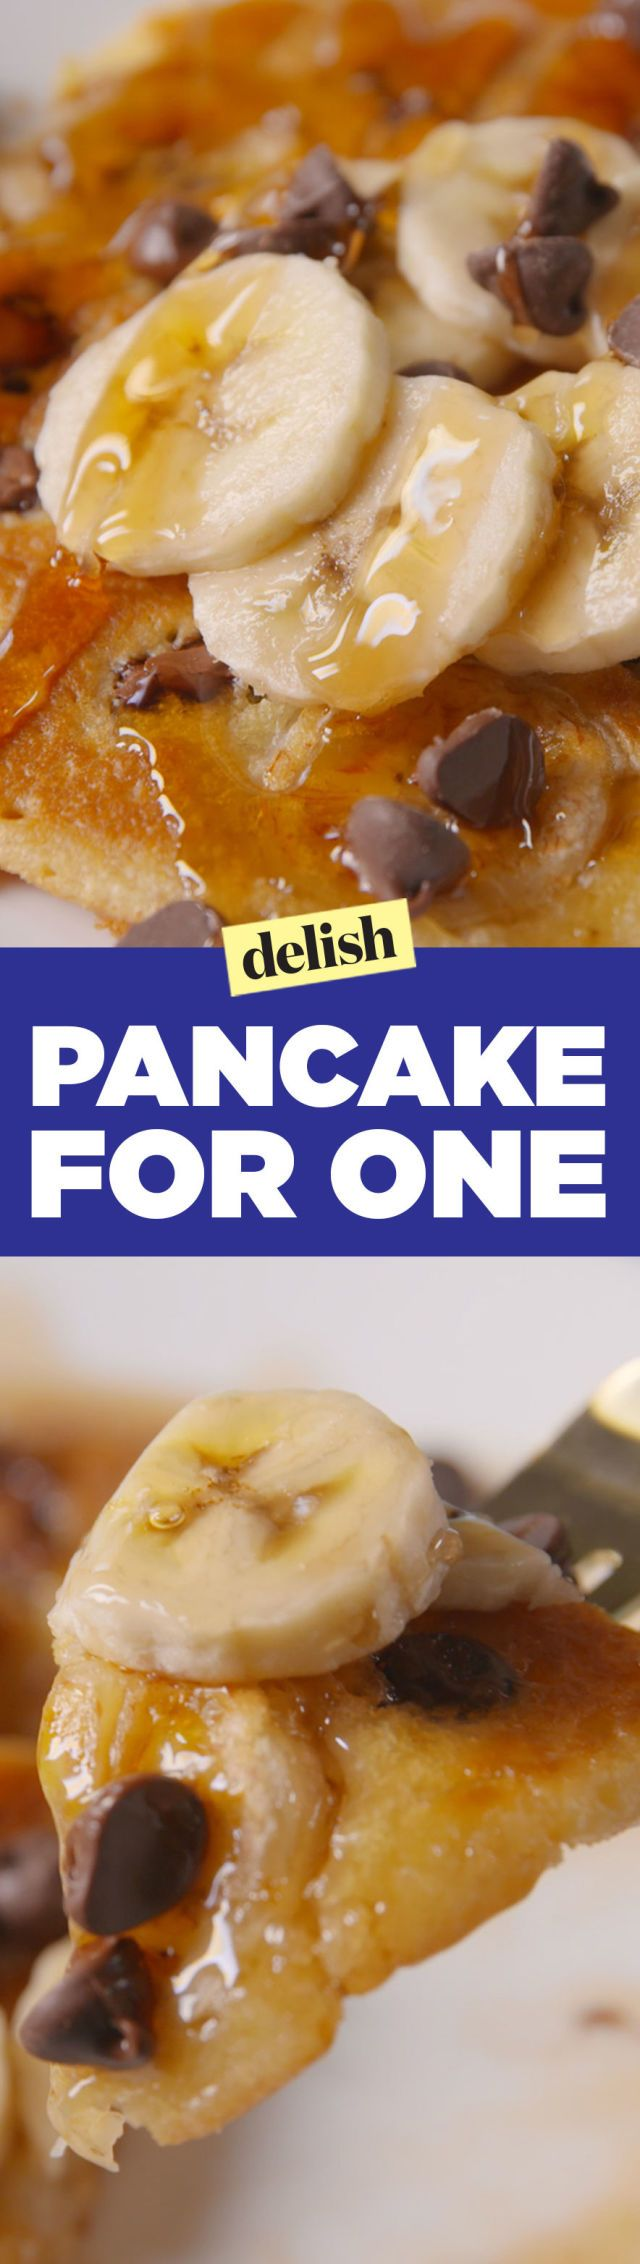 Finally, A Pancake Recipe That Makes Just Enough For One Person - Delish.com